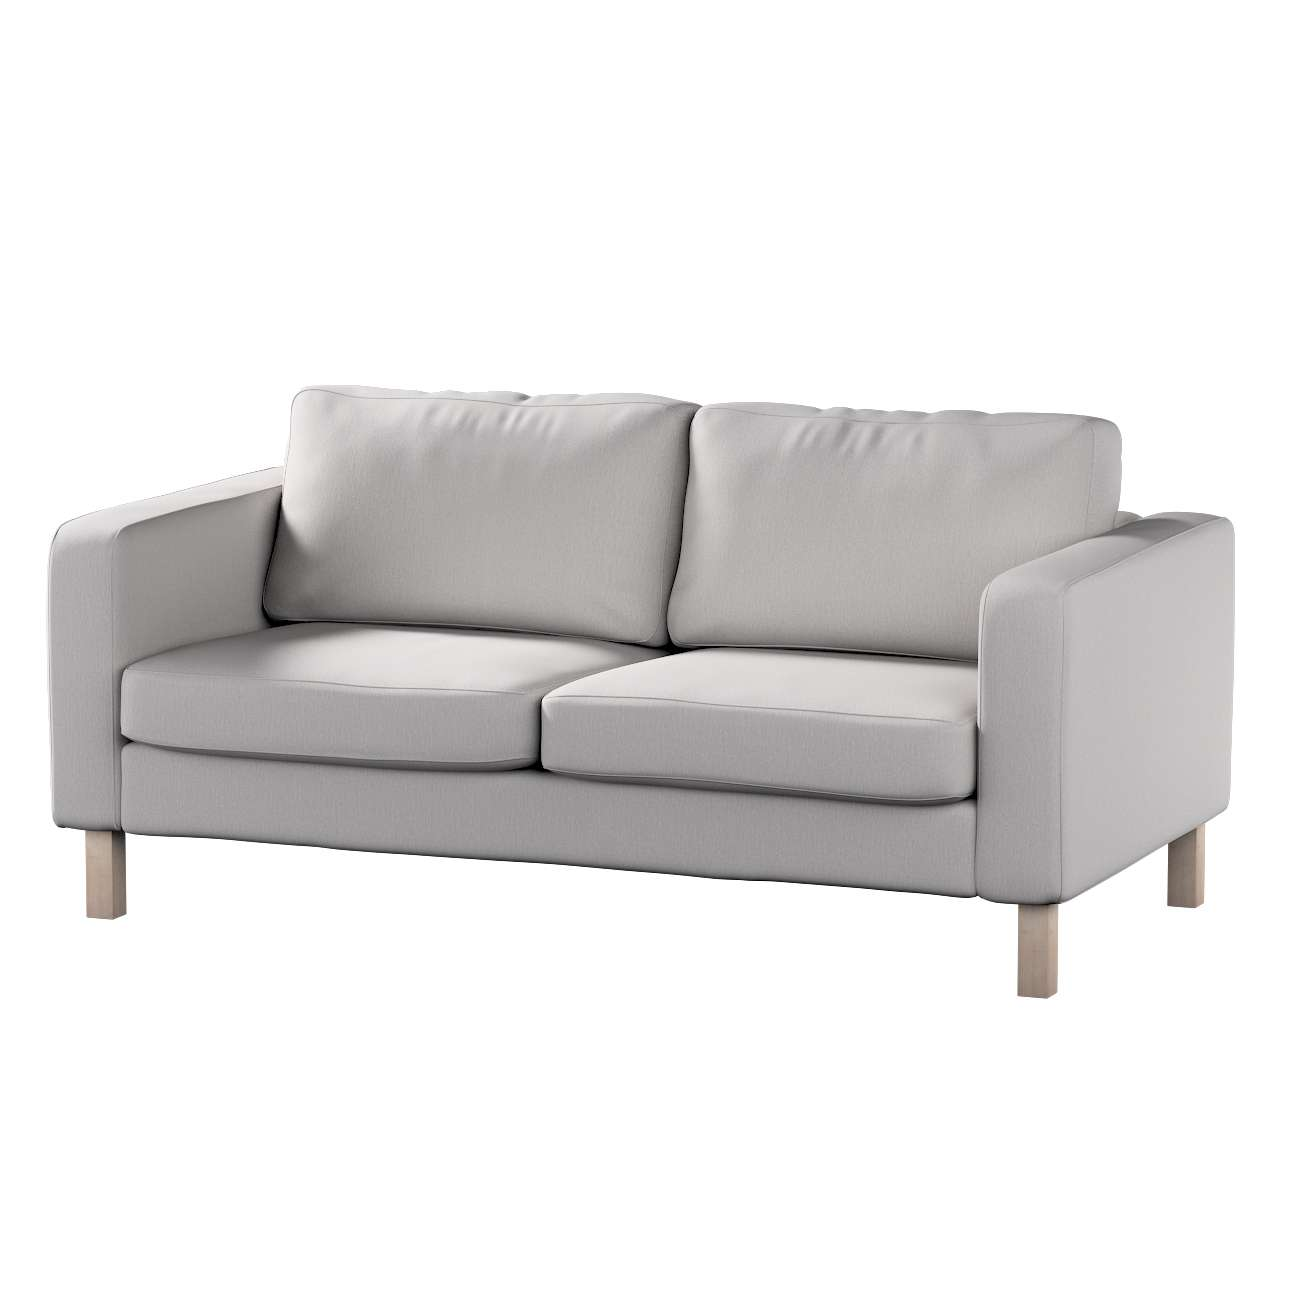 Karlstad 2-seater sofa cover in collection Chenille, fabric: 702-23